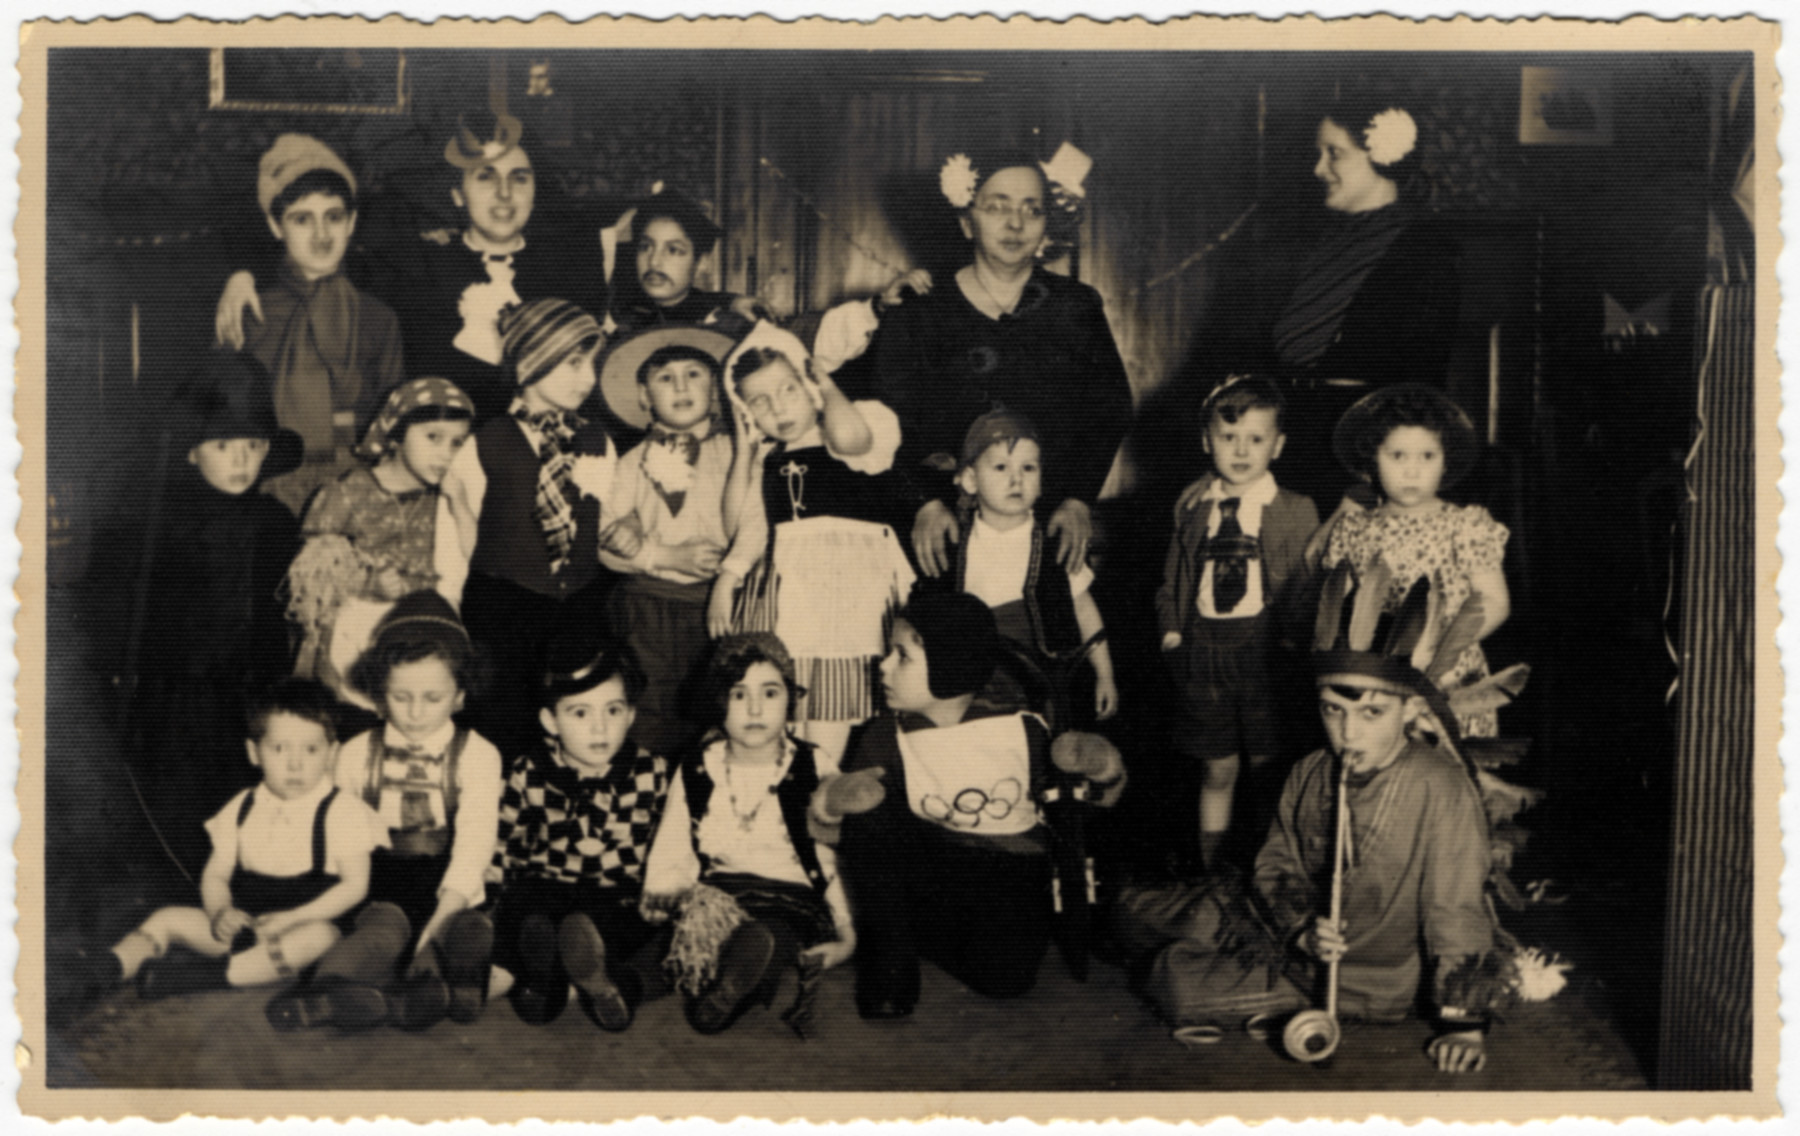 Group portrait of children in the Jewish kindergarten of Ludwigshafen dressed in Purim costumes.